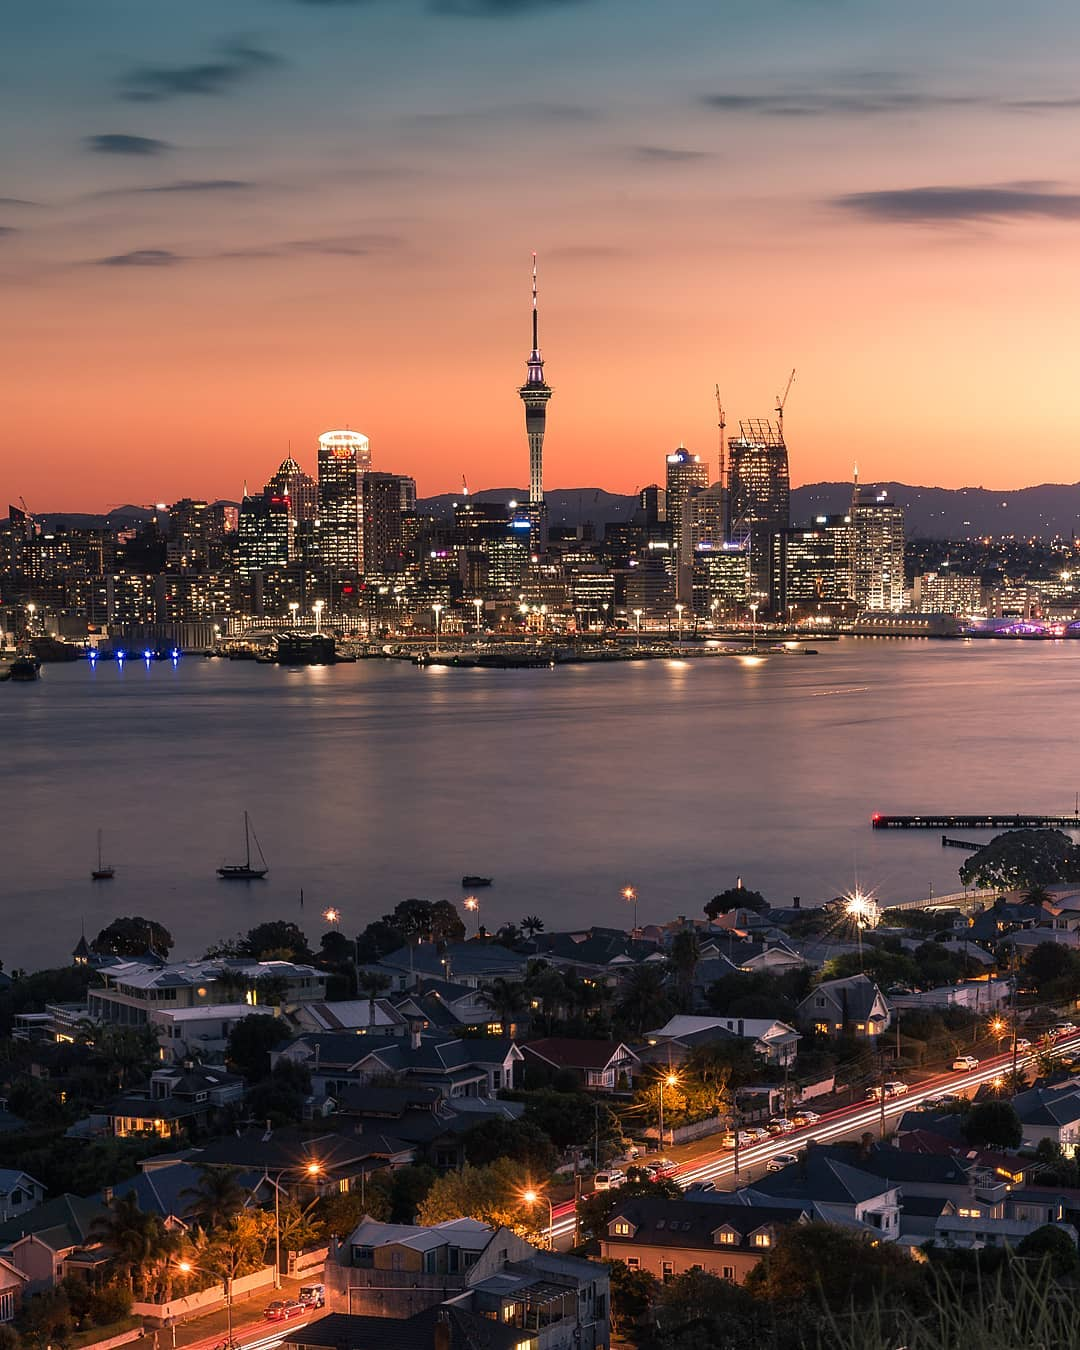 twilight picture of Auckland city